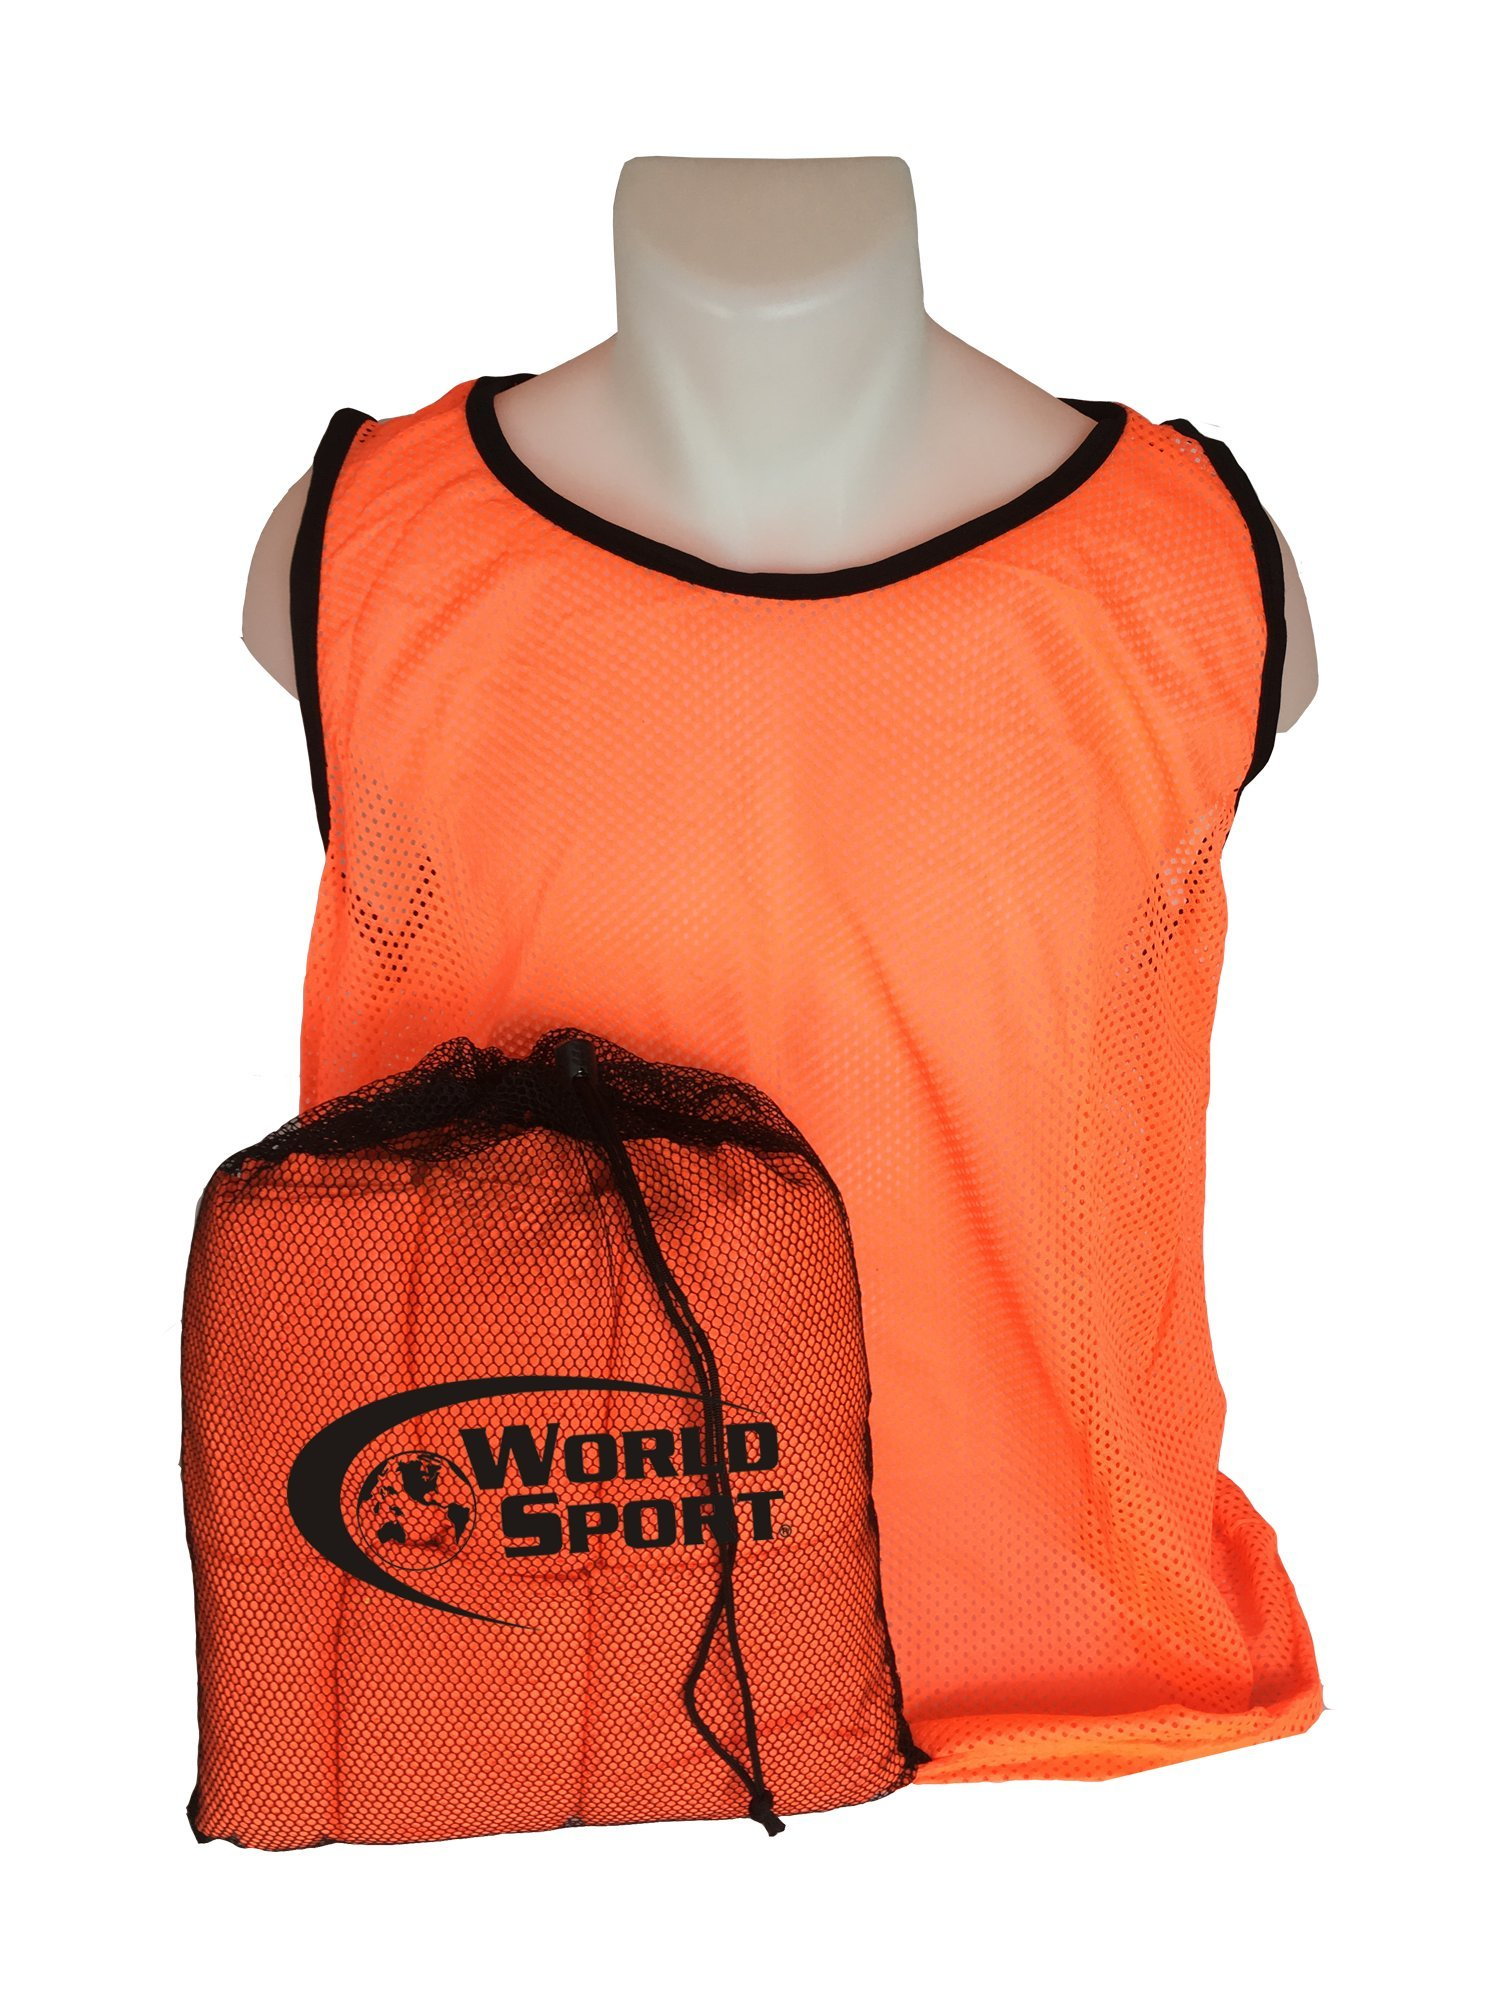 12 Pack Adult ORANGE Scrimmage Vests with Carry Bag by World Sport